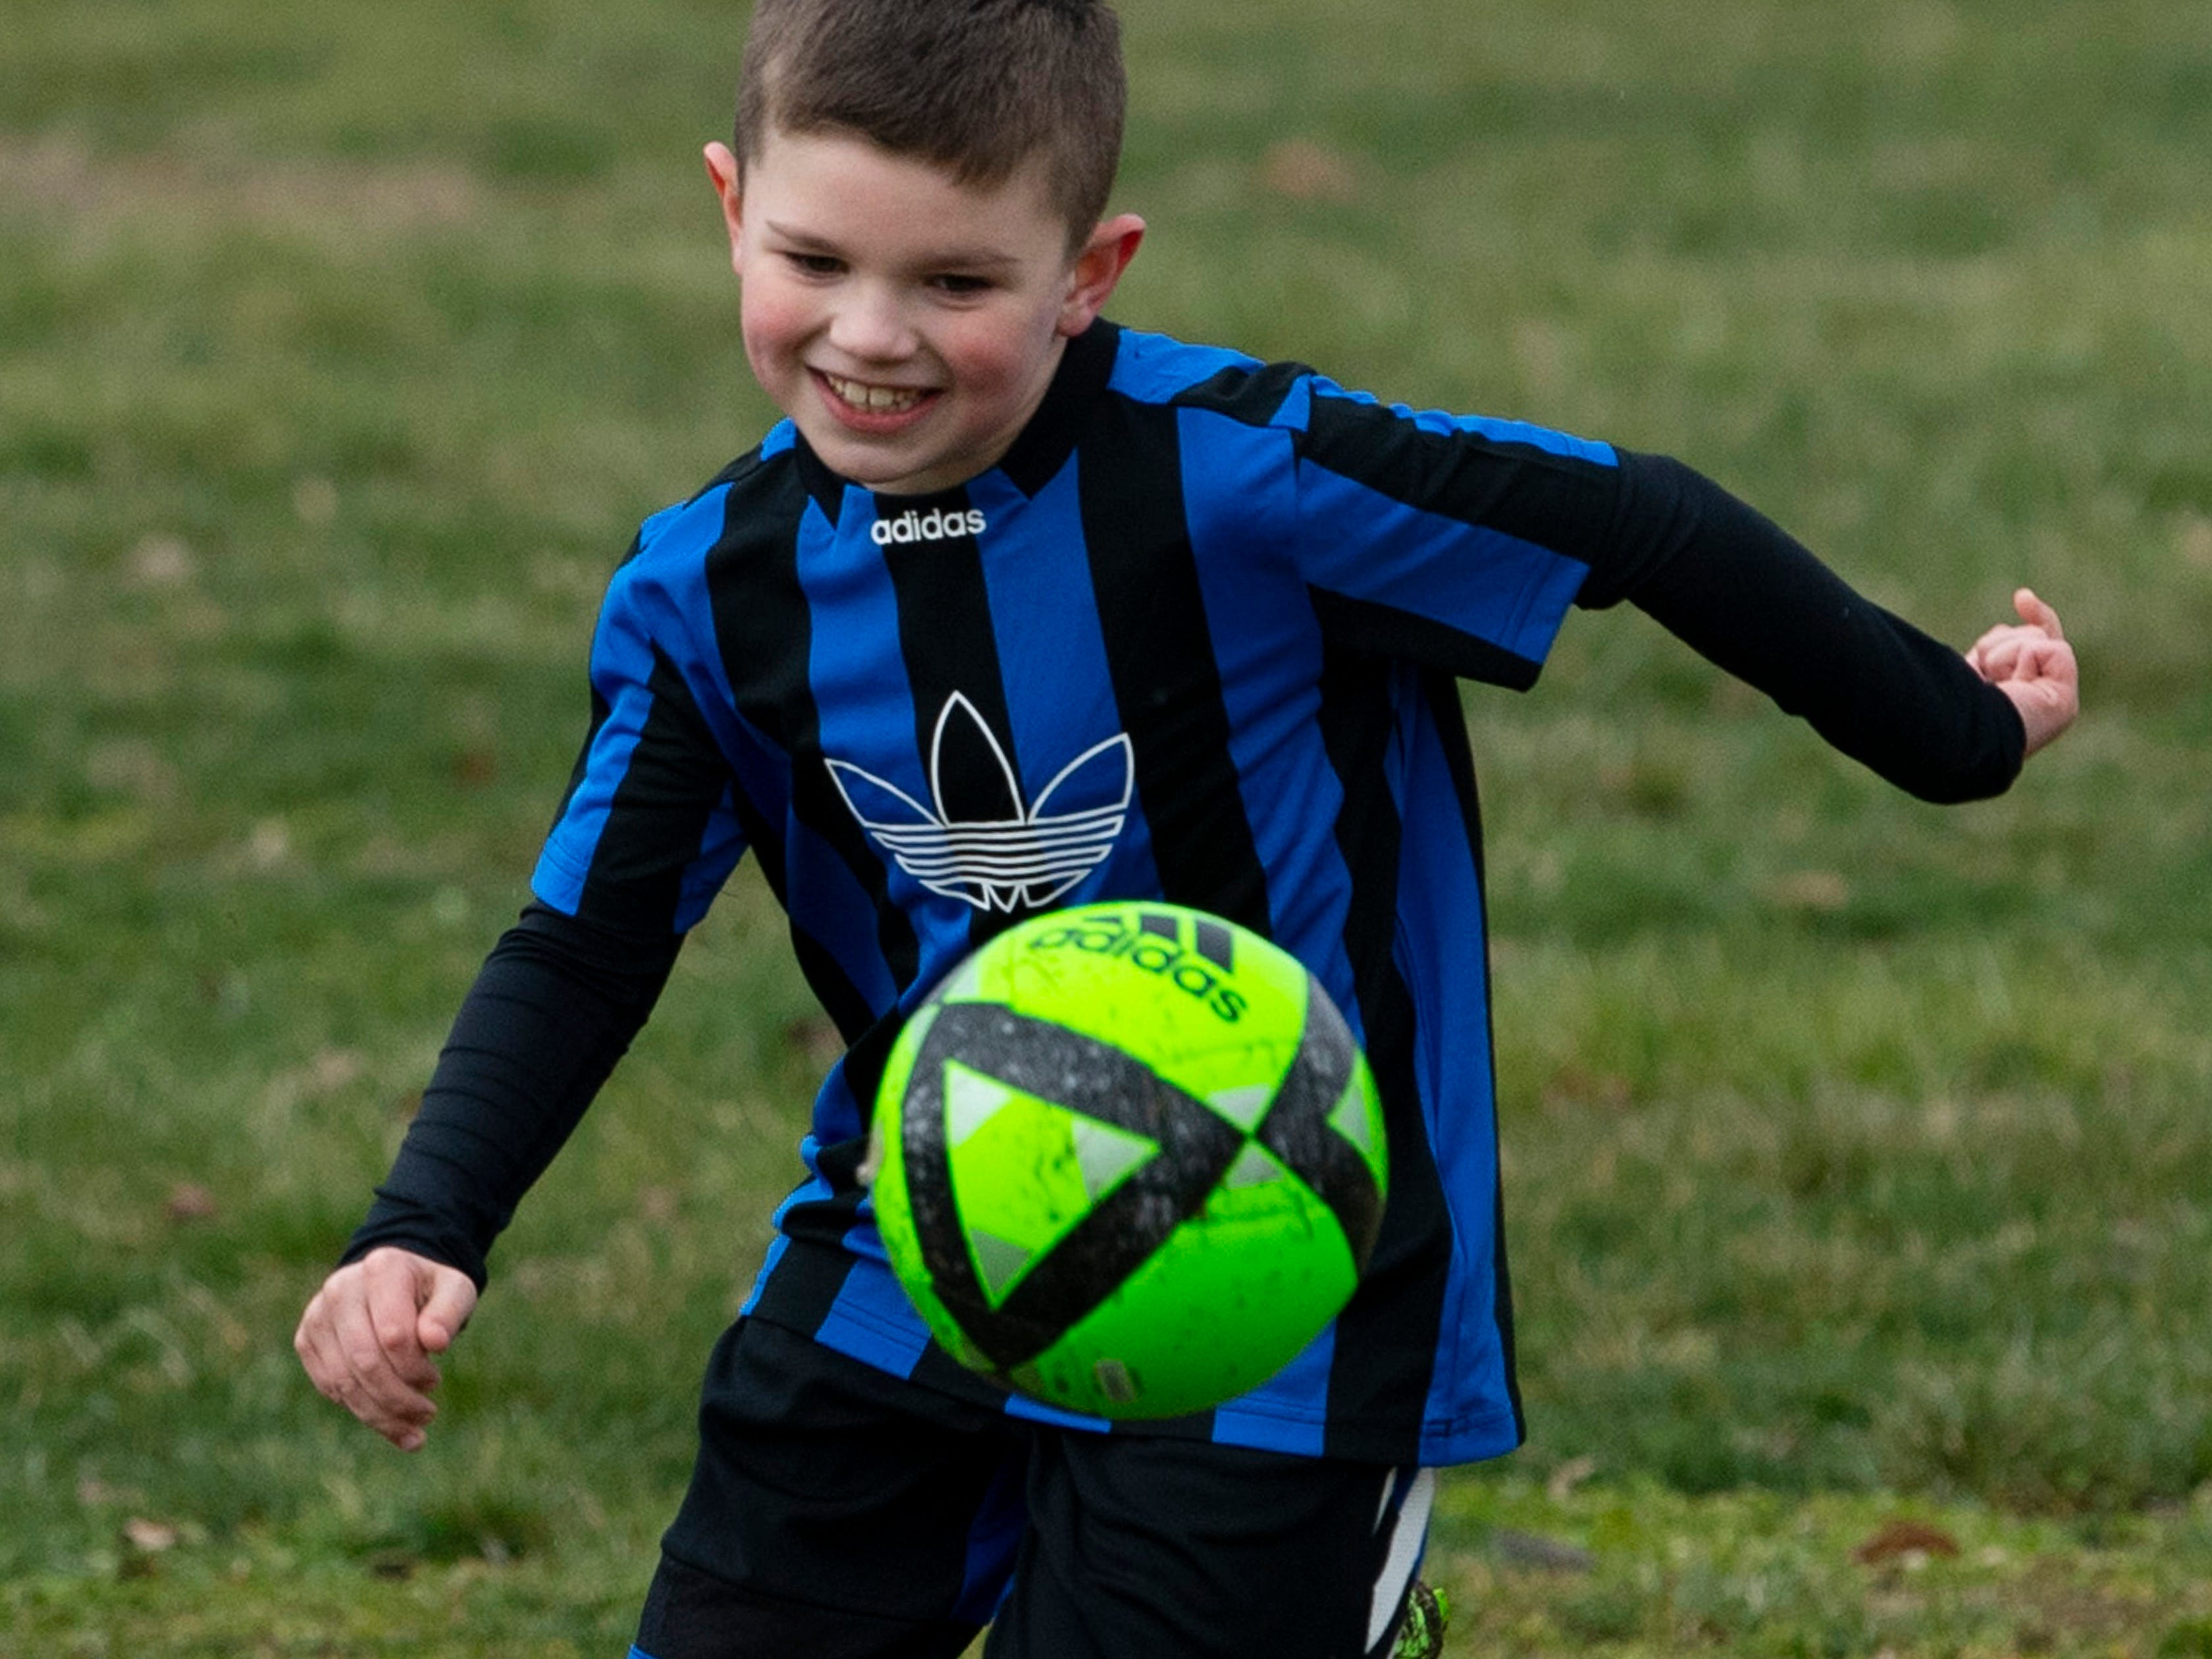 Renner Hurt, 7, of Evansville chases down a crossing pass from his dad, Brian Hurt, before his first soccer practice of the year at Vann Avenue Soccer Fields Wednesday evening.